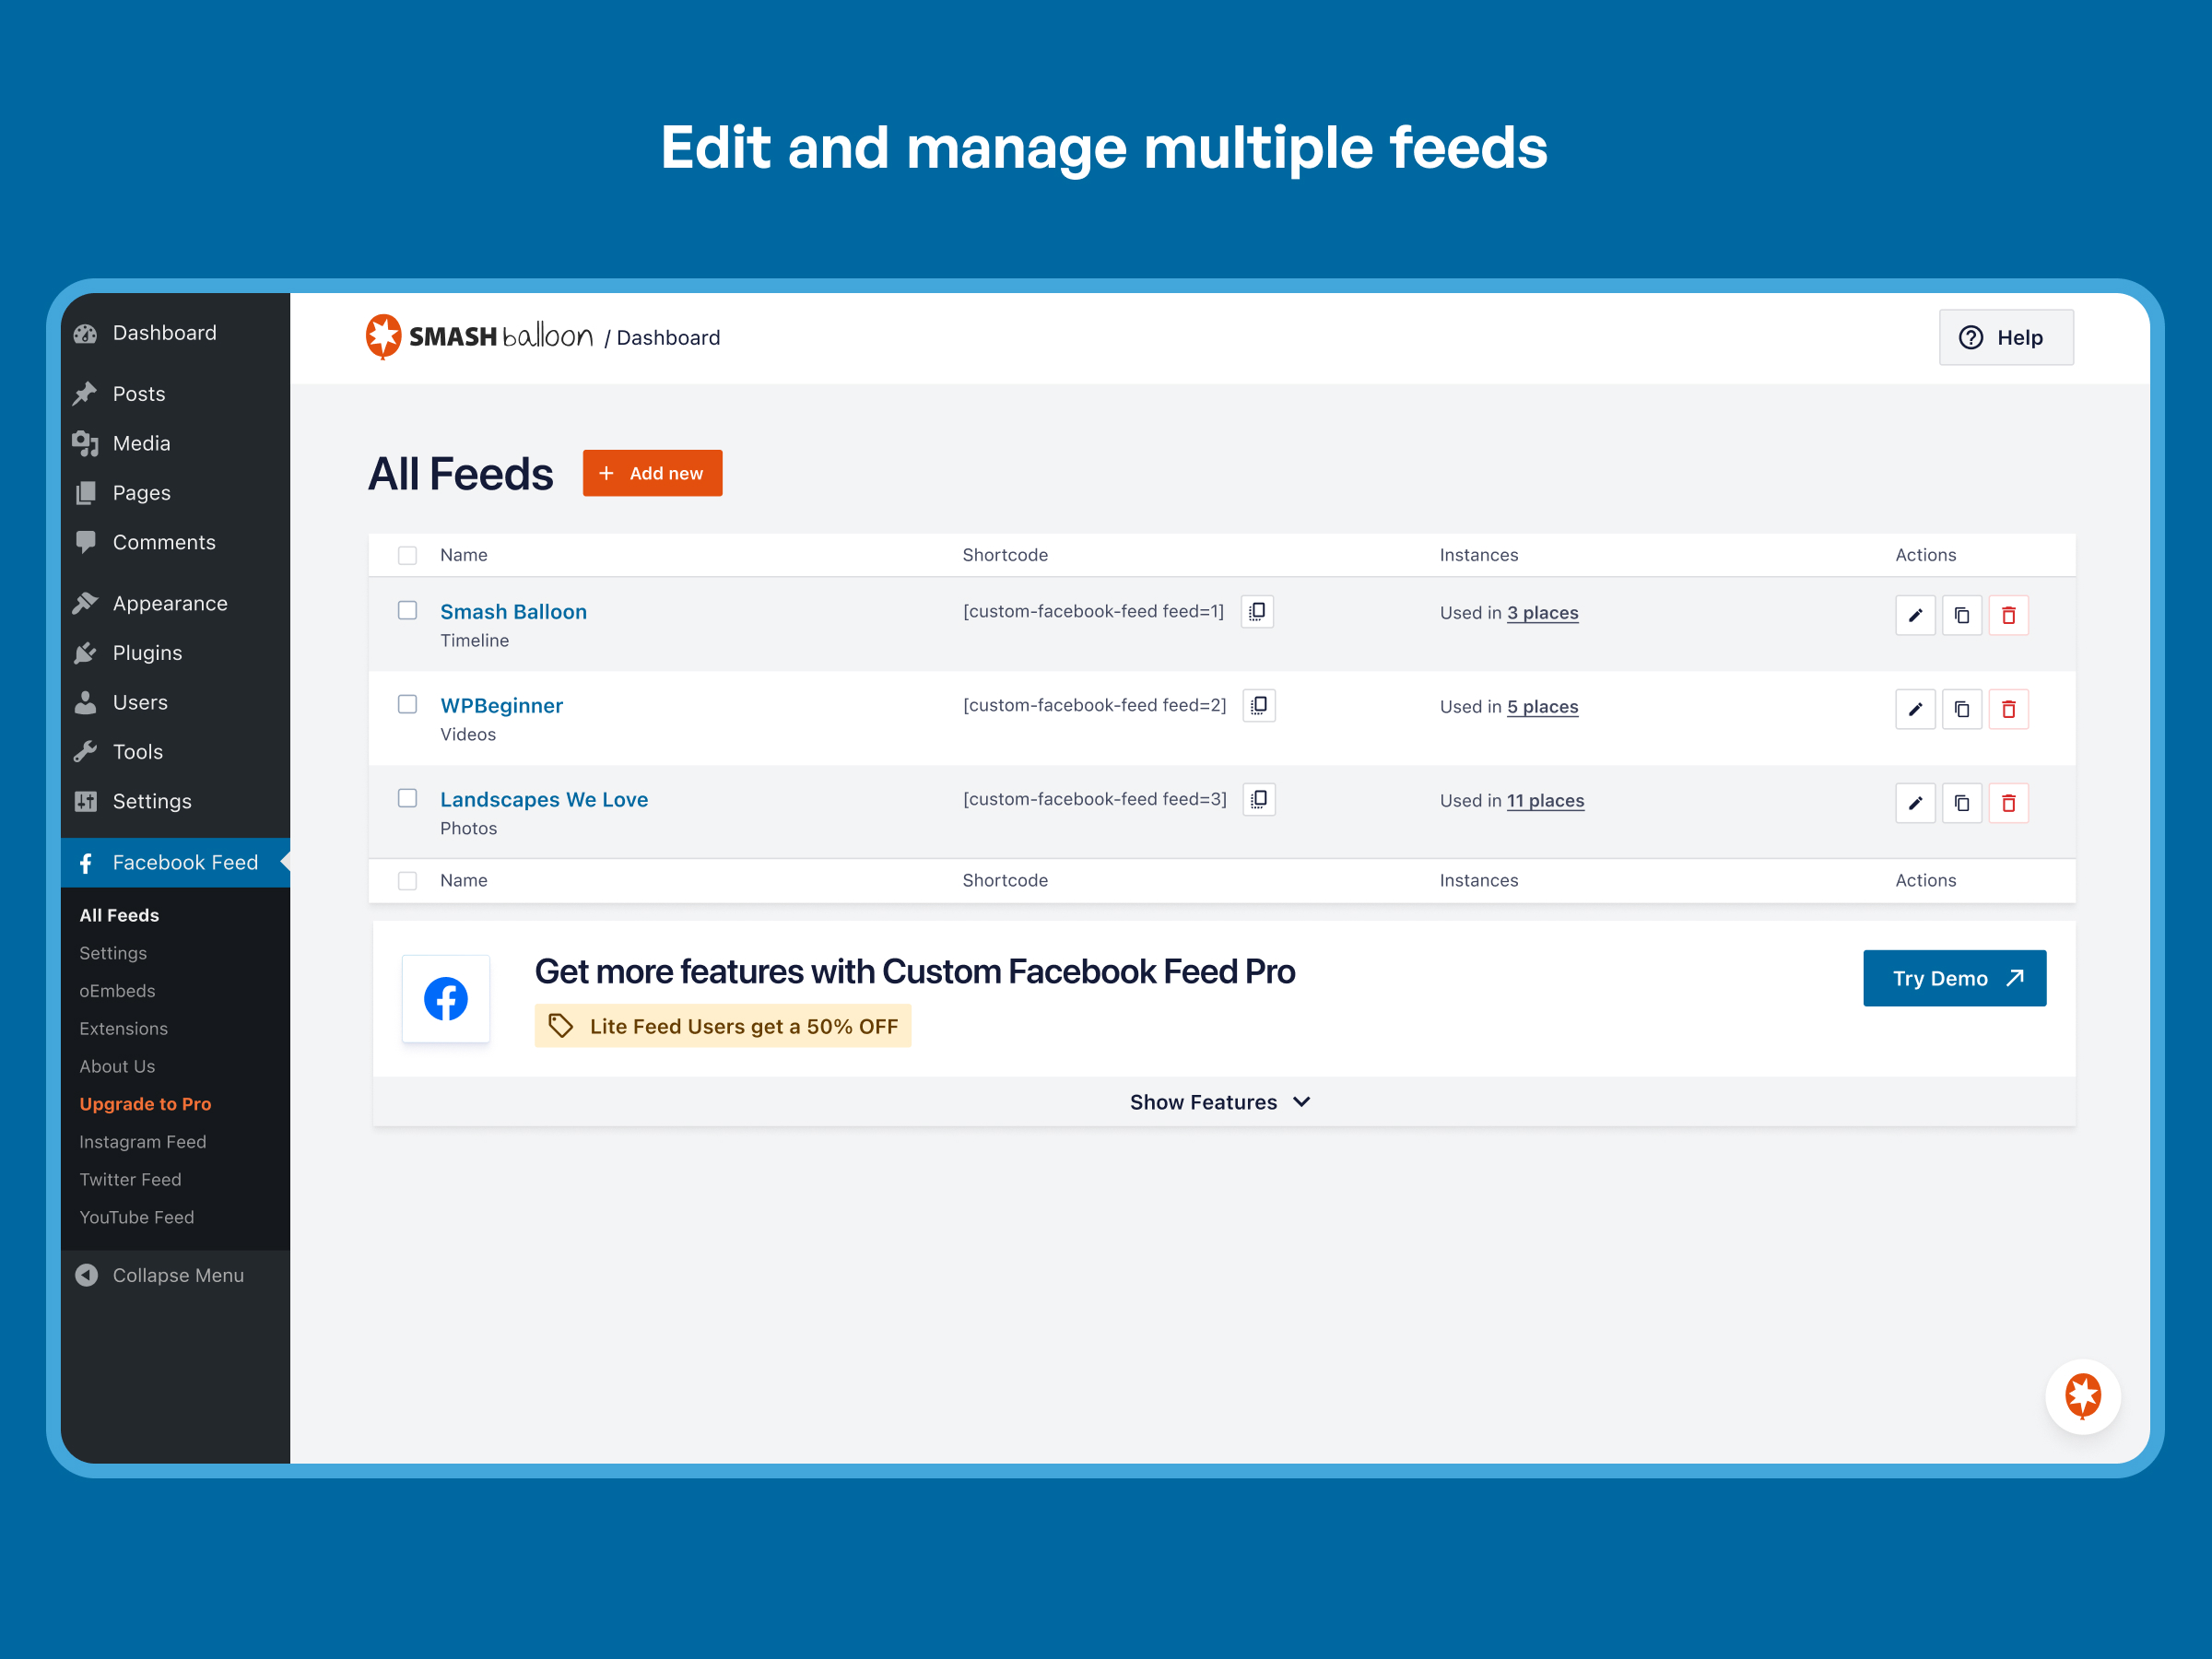 Easily manage and edit all your Facebook Feeds in one place on the All Feeds page